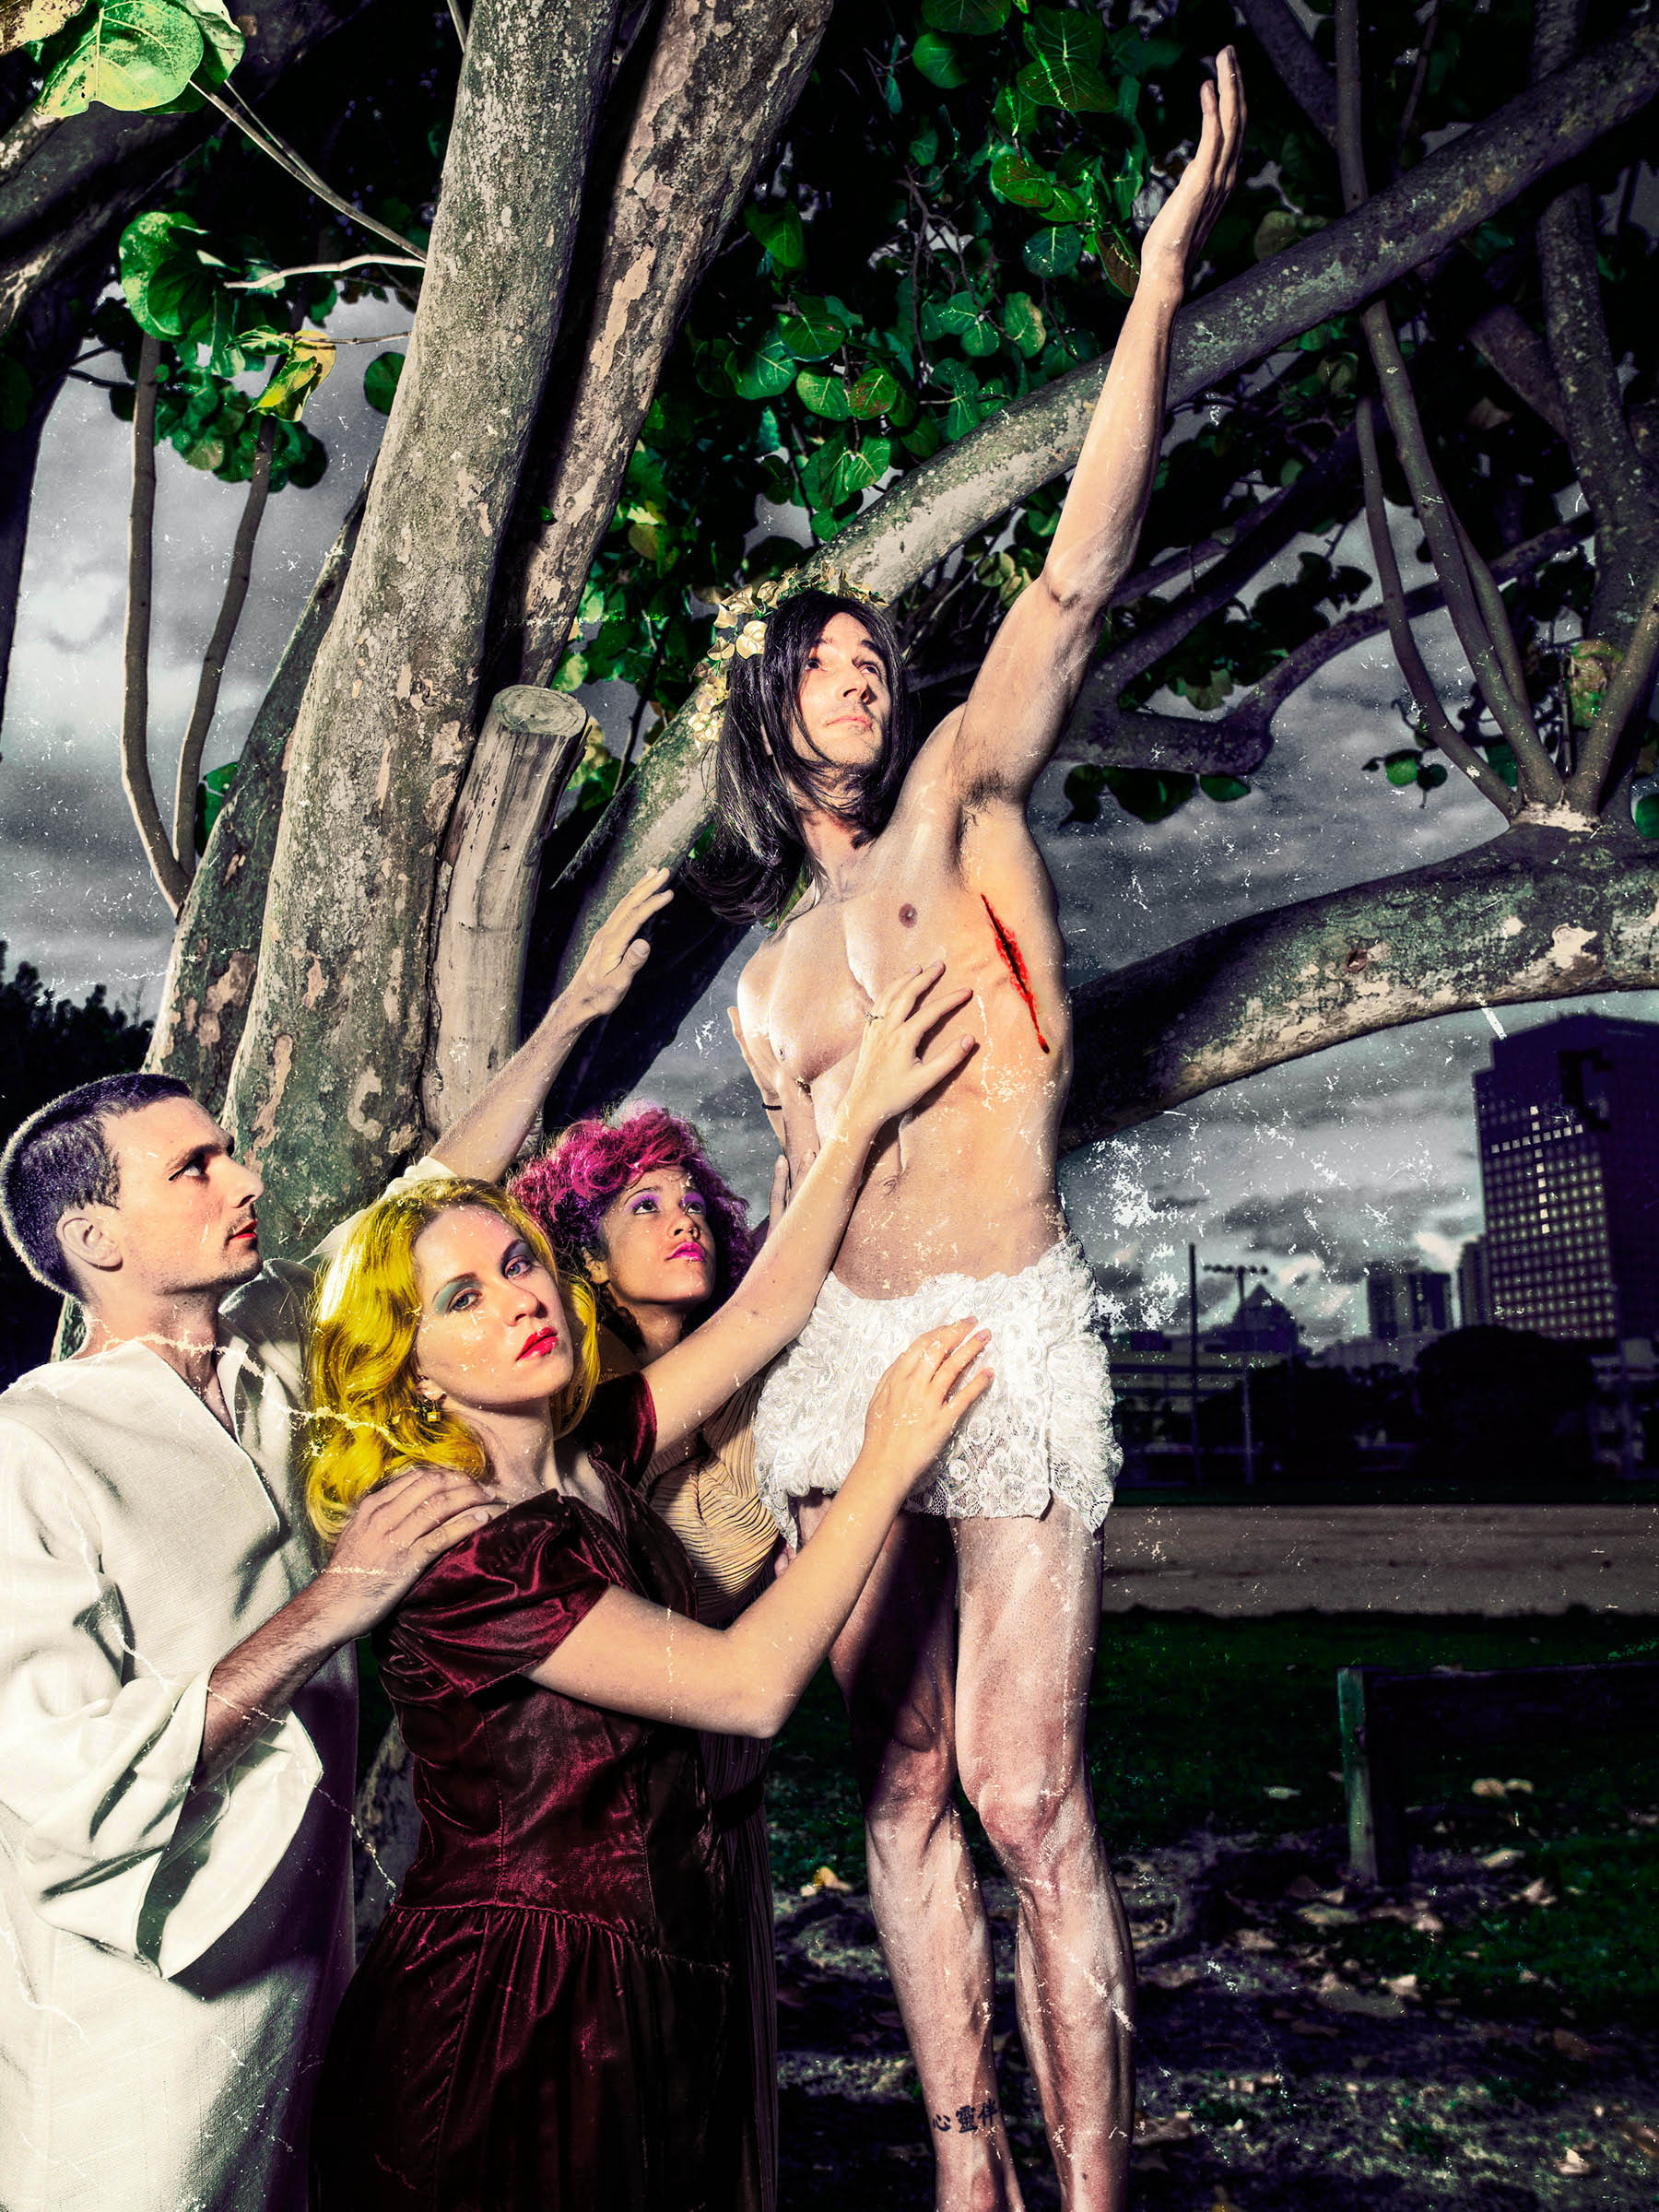 Easter Morning at the Ft Lauderdale Ball Park Jesus and Mary and Mary Magdalena and Brother John the Ascension by the best conceptual PORTRAIT Photographer Professional Portraits by Wick Beavers Photographer in NYC and LA